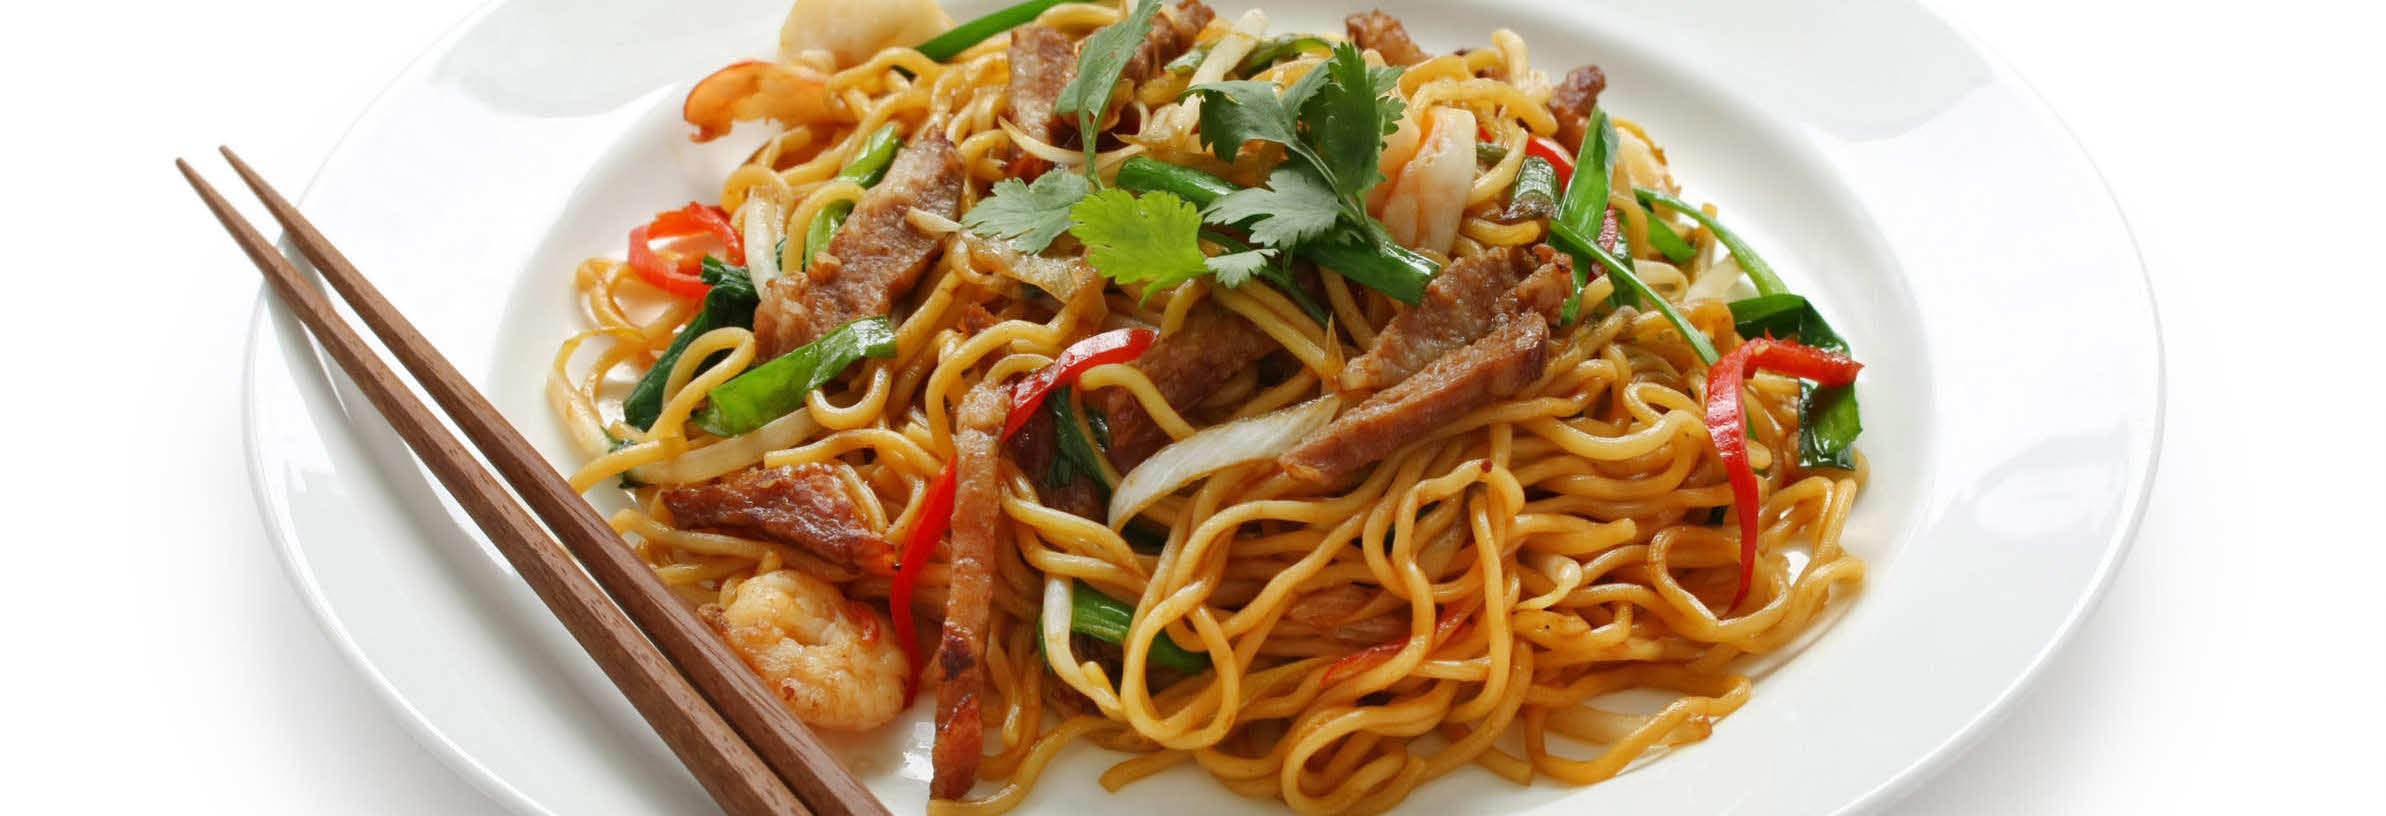 Chinese, delivery, eat in, cuisine, fresh, vegetarian, pork, beef, chicken, seafood